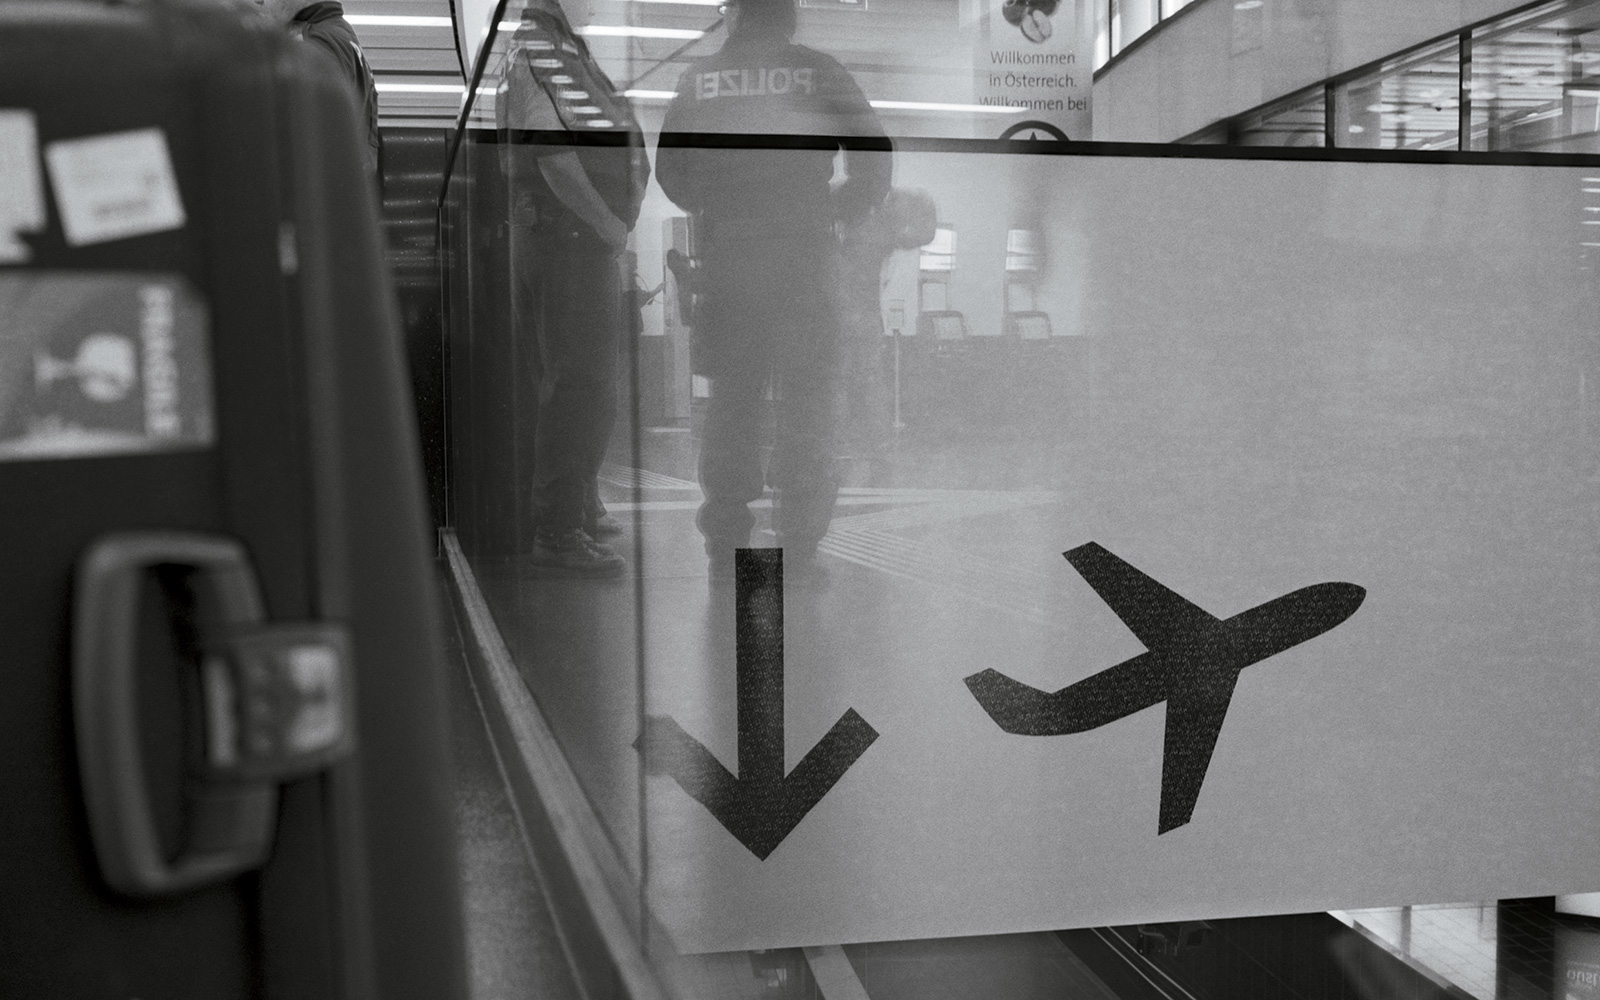 AUSTRIA. Vienna. 2012. Vienna International Airport.